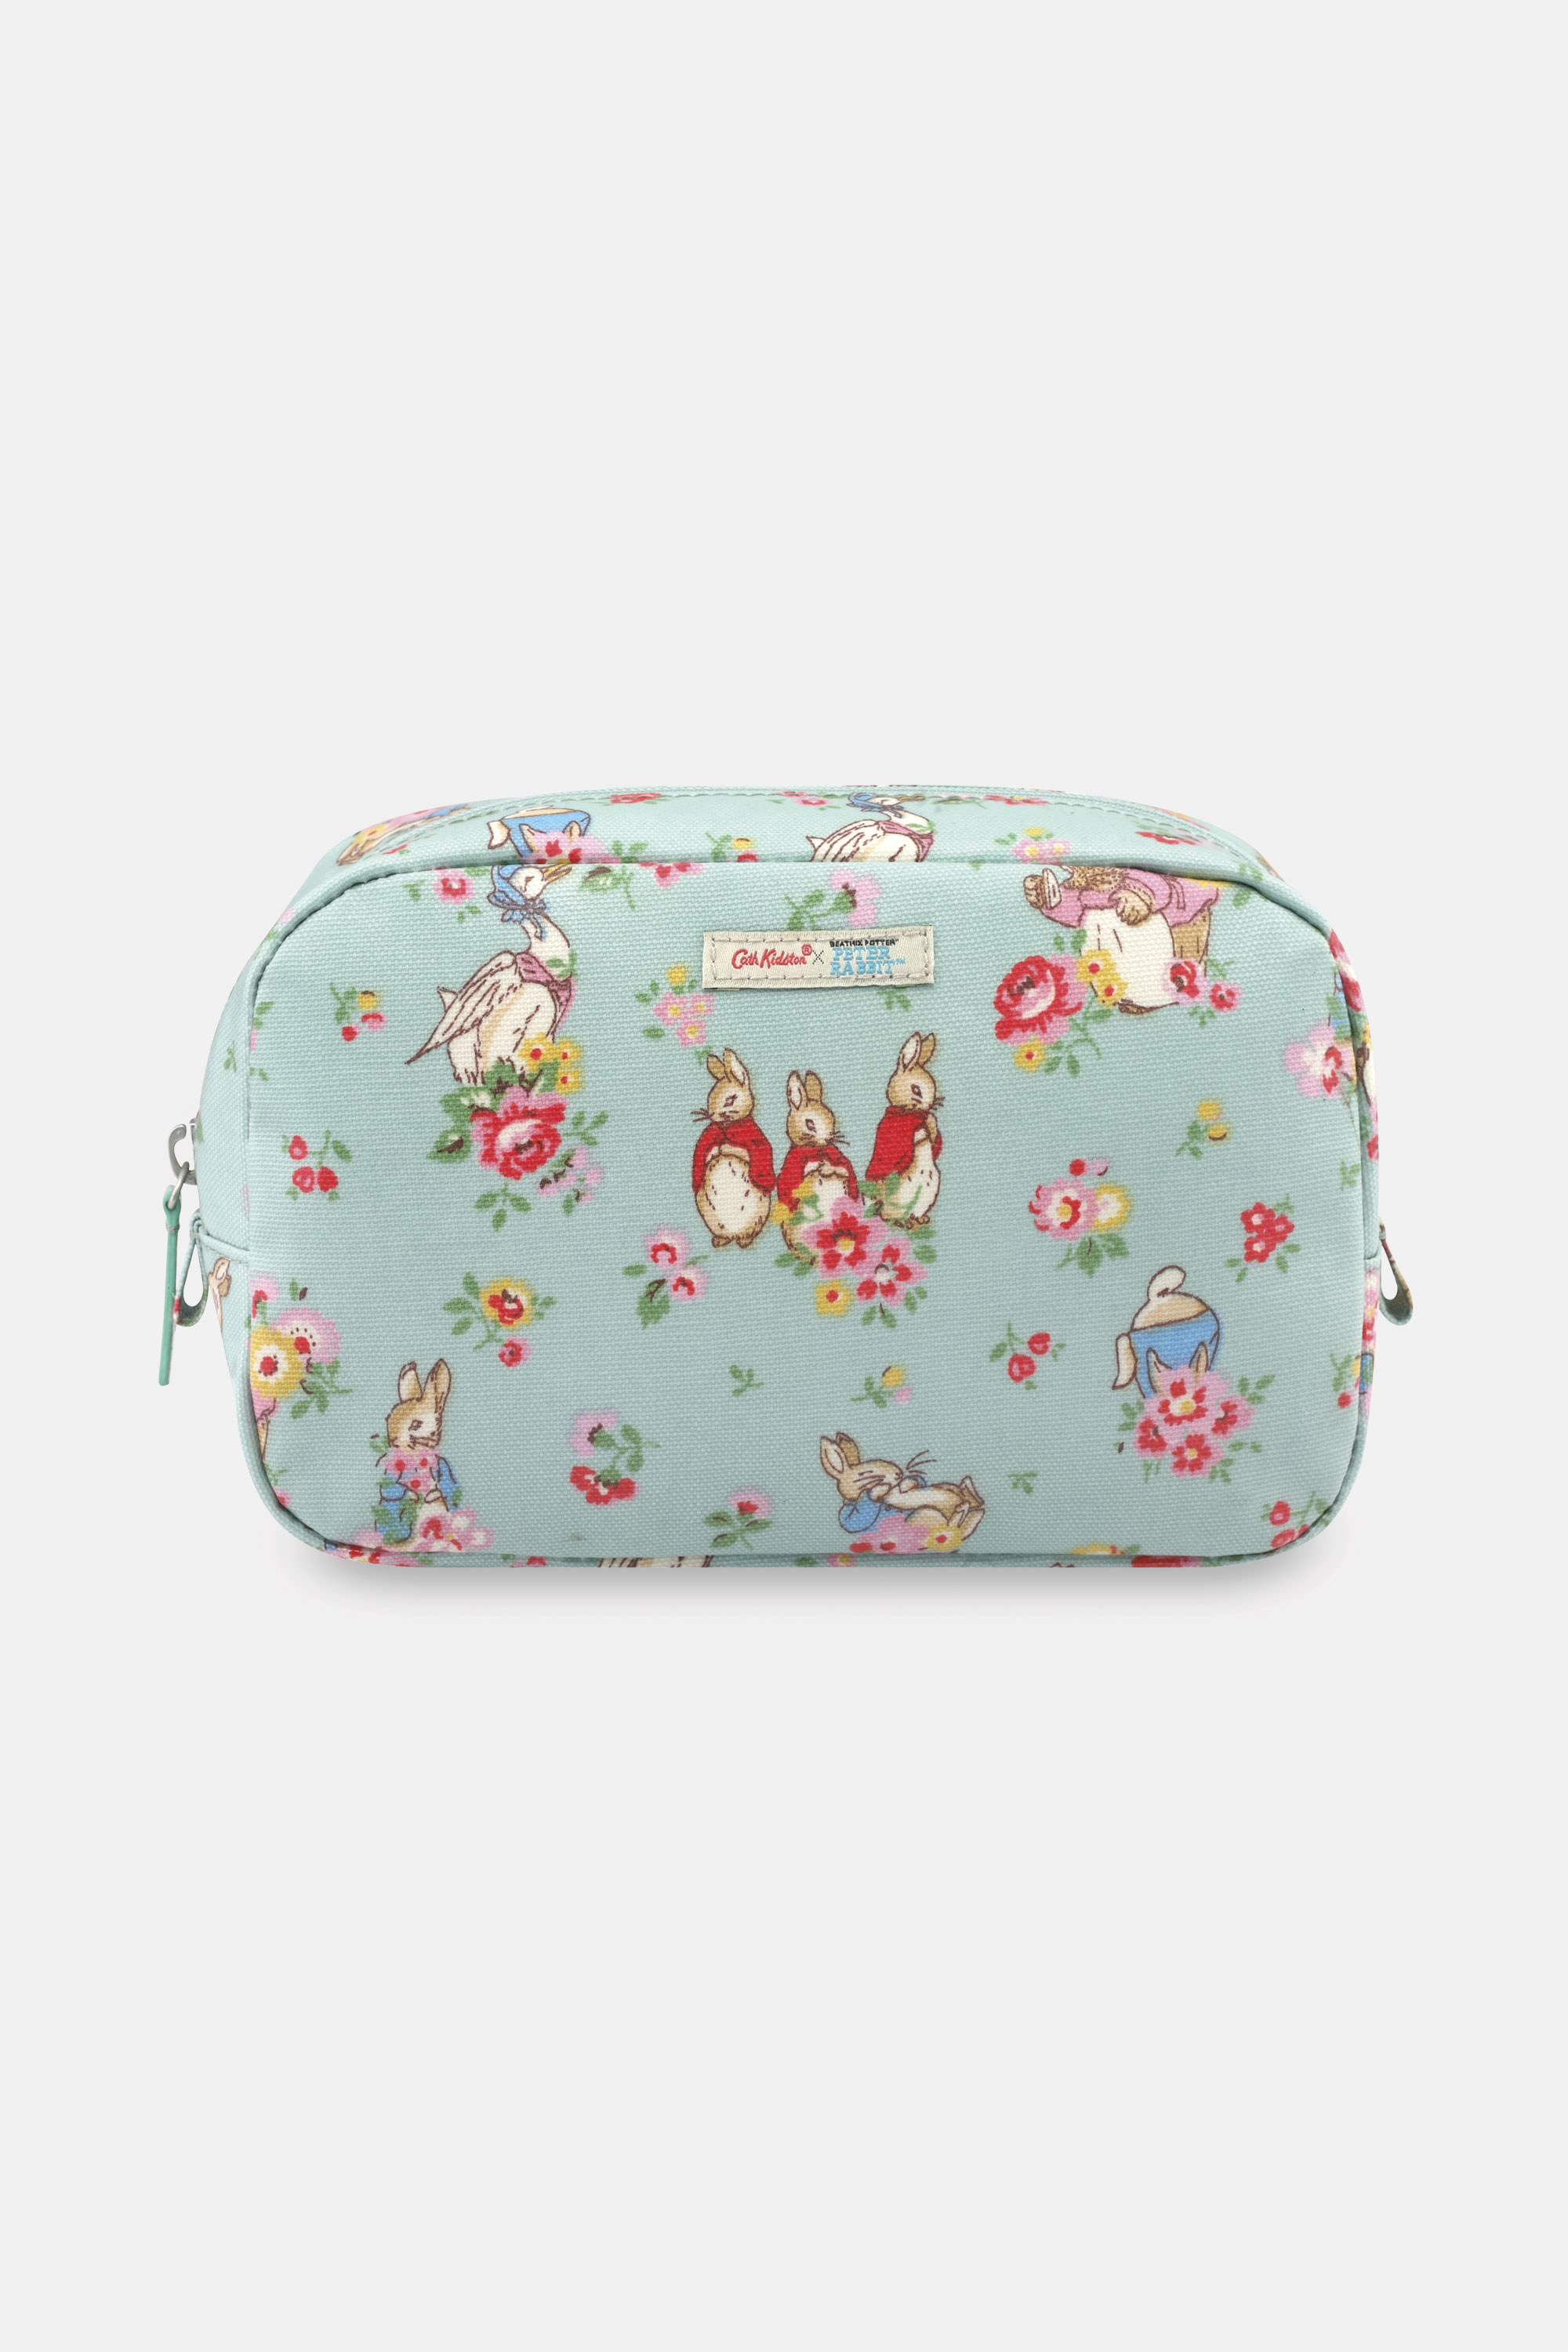 Cath Kidston Peter Rabbit Ditsy Classic Cosmetic Bag in Mint